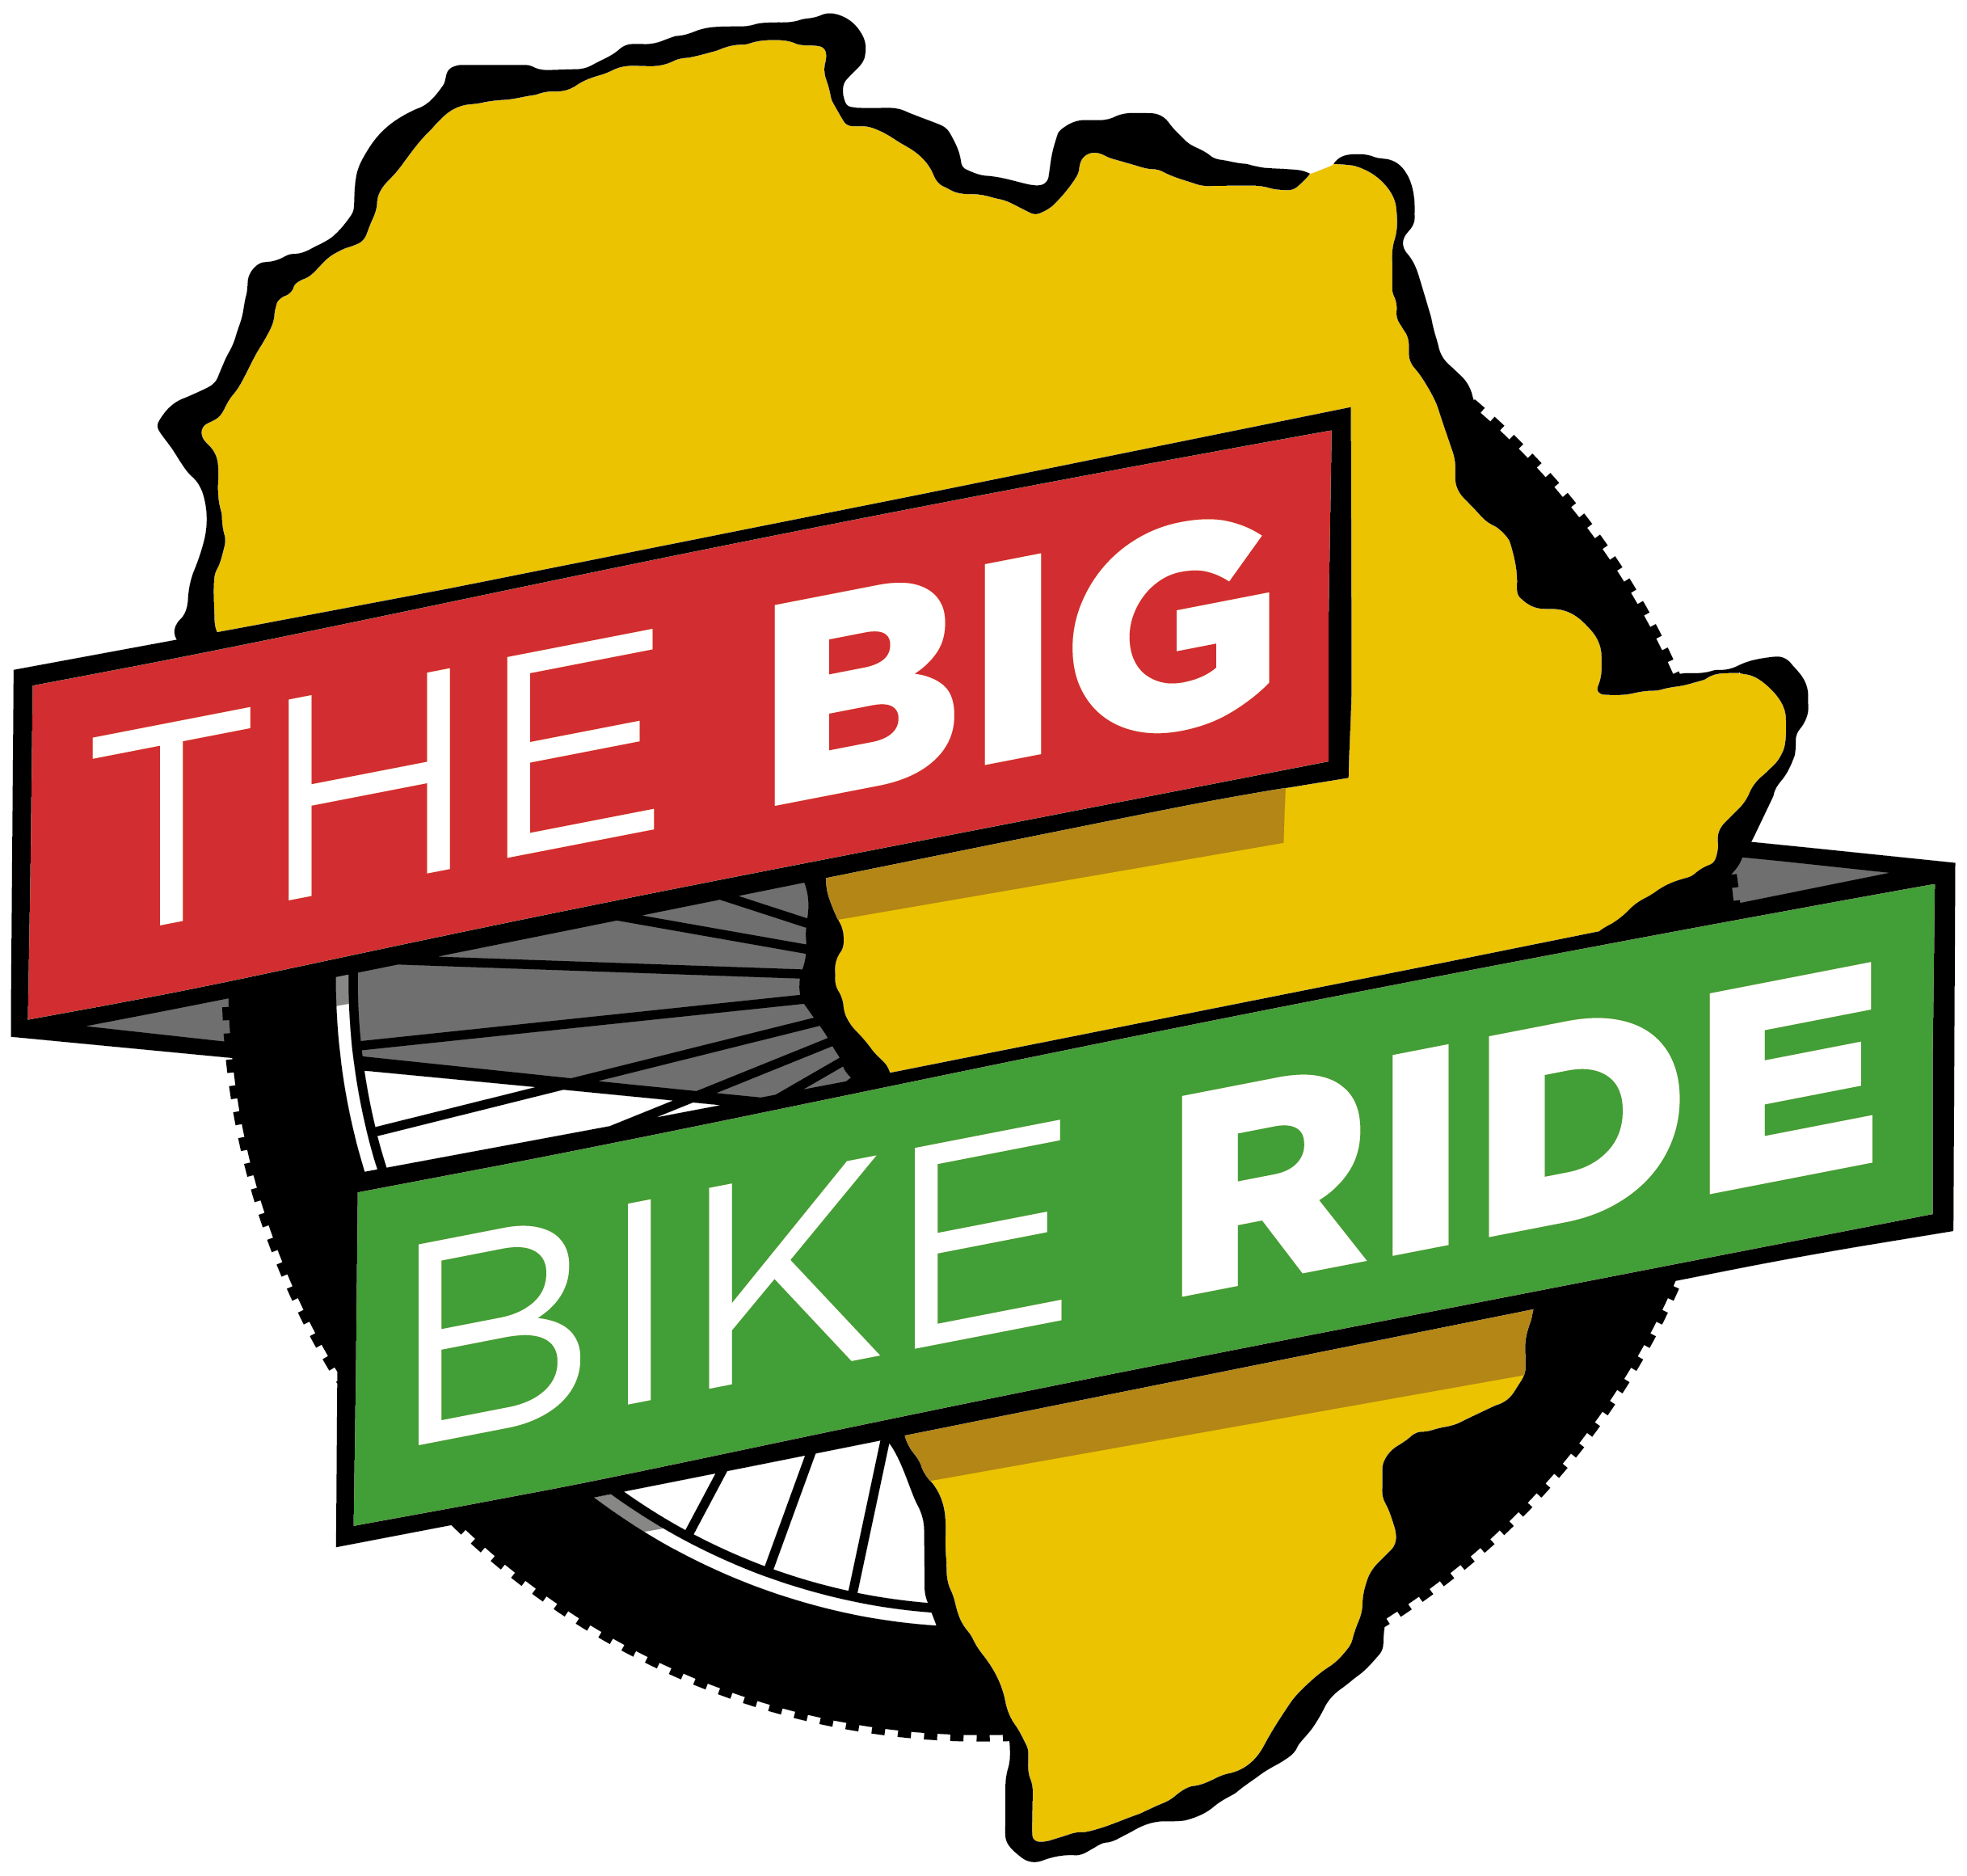 The Big Bike Ride